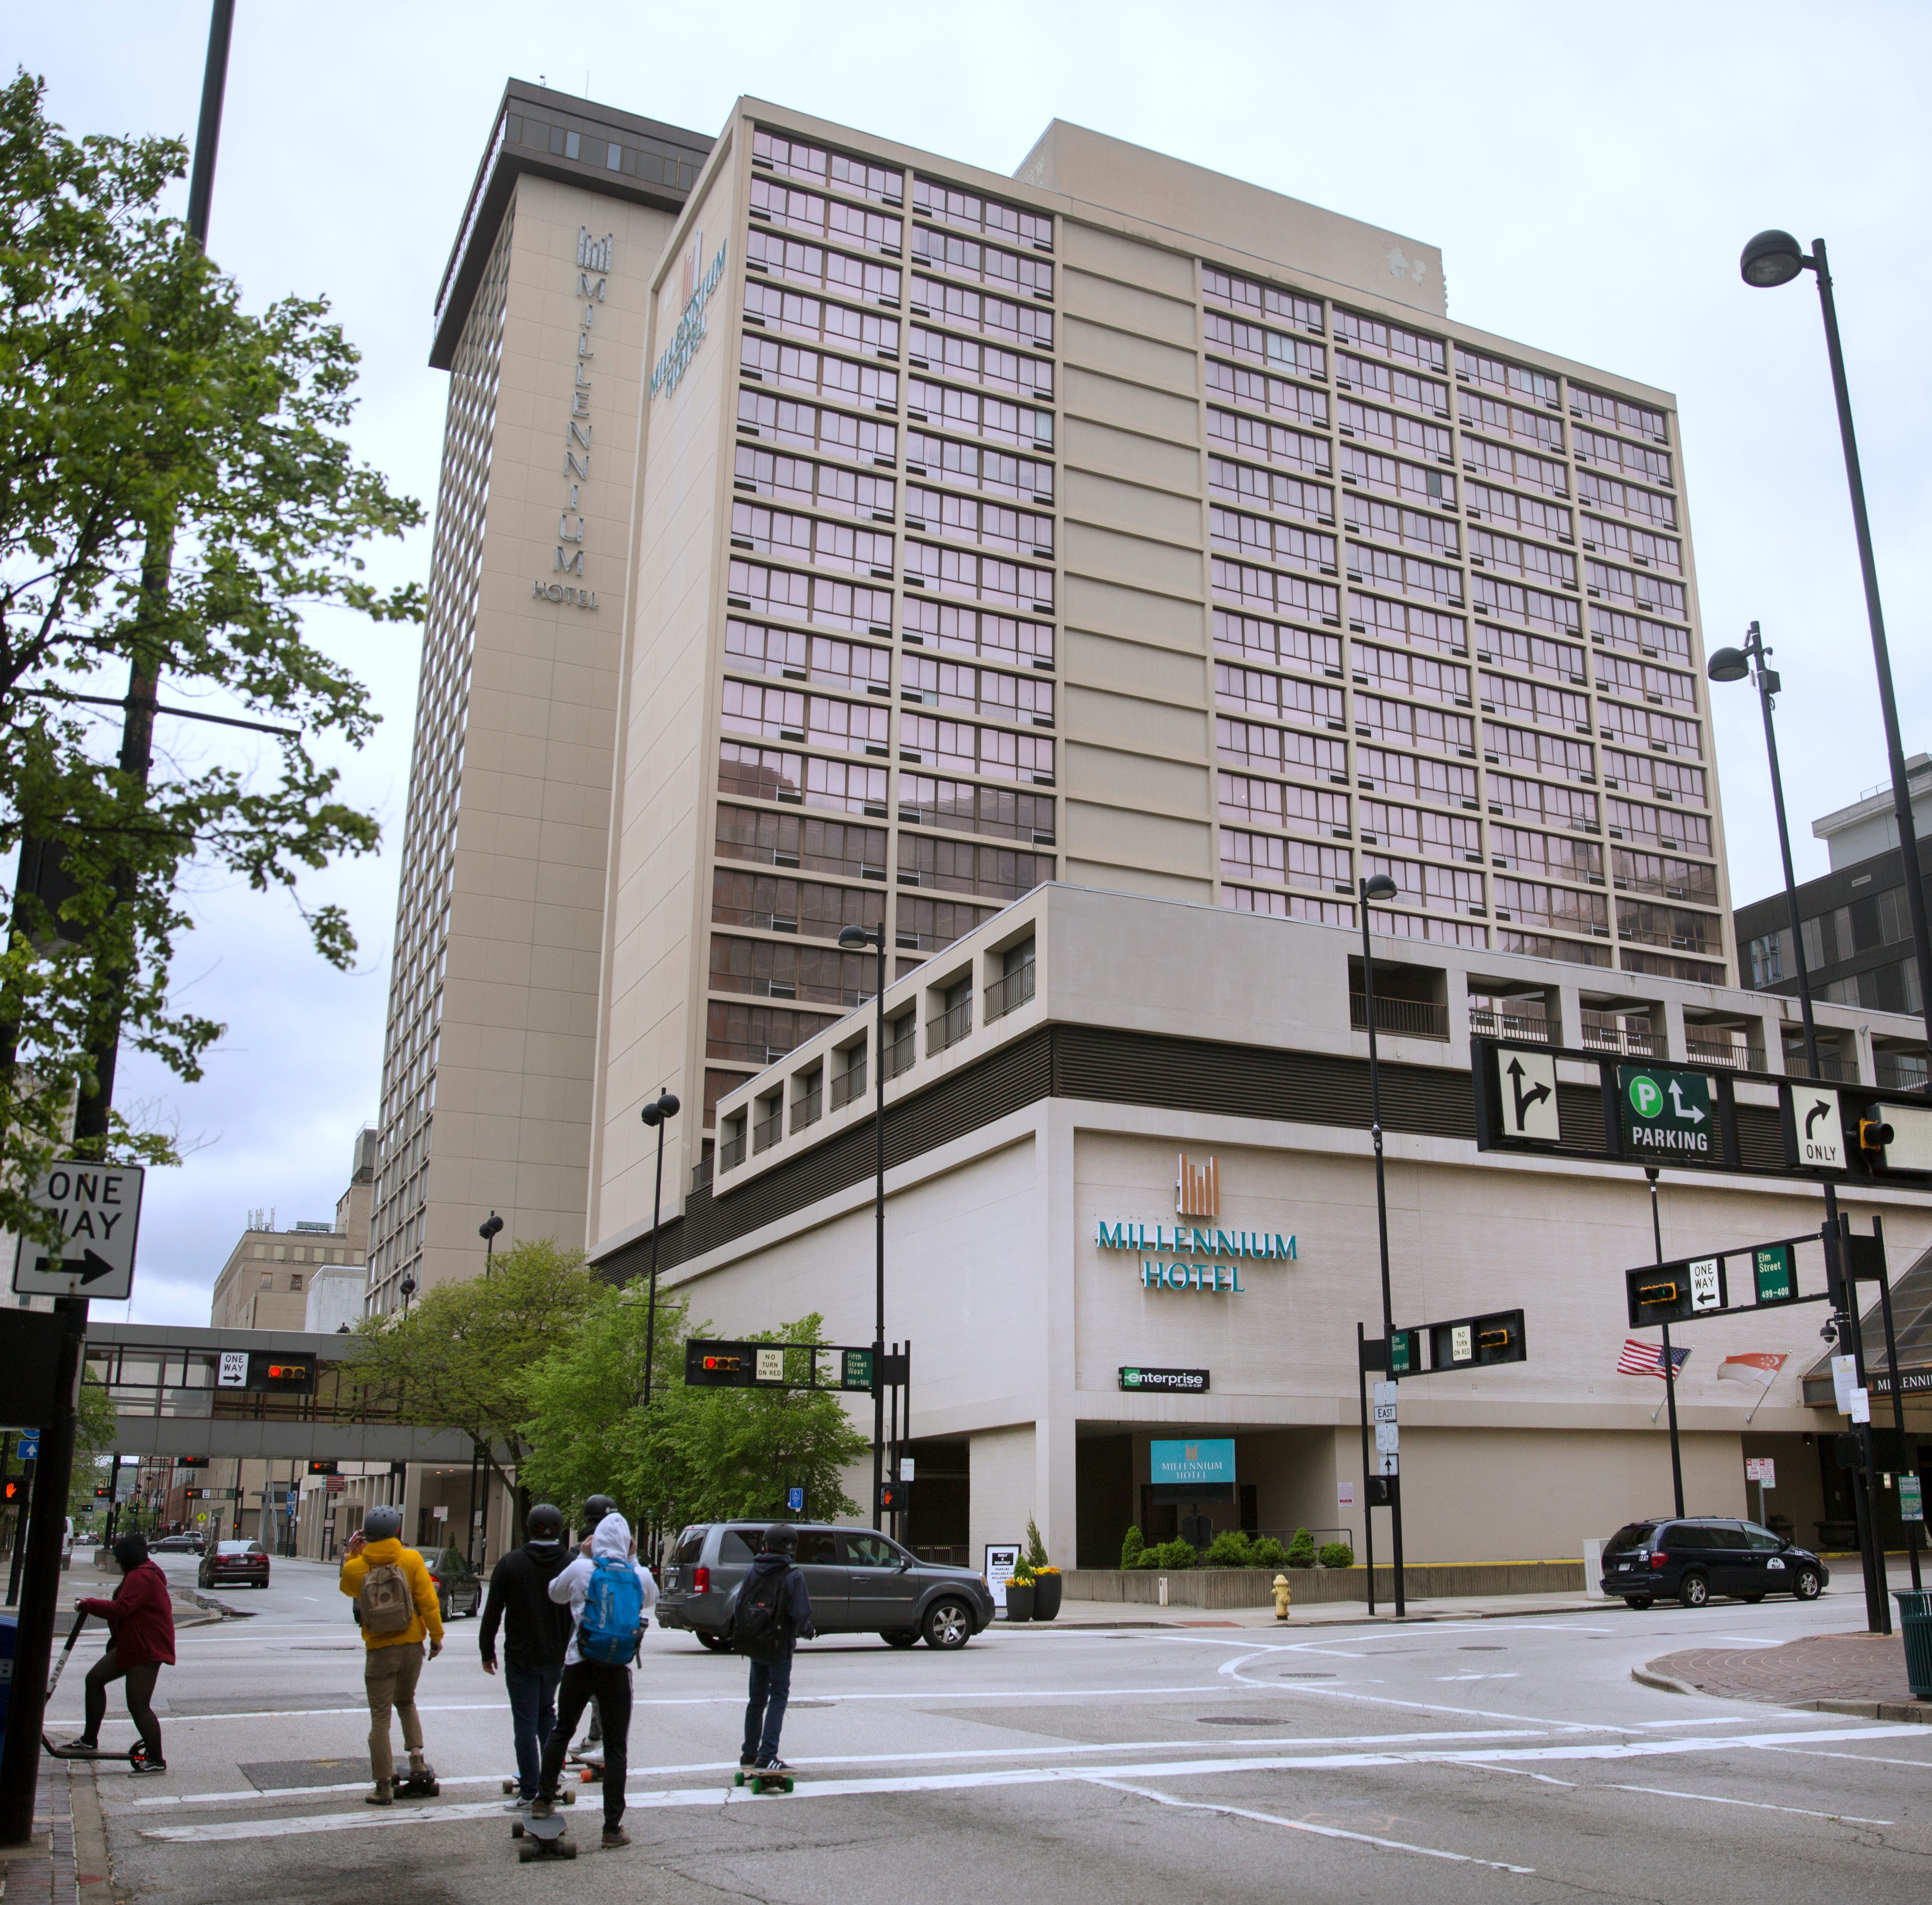 Millennium Hotel a victim of 'aggression,' accuses city of Cincinnati of smear campaign